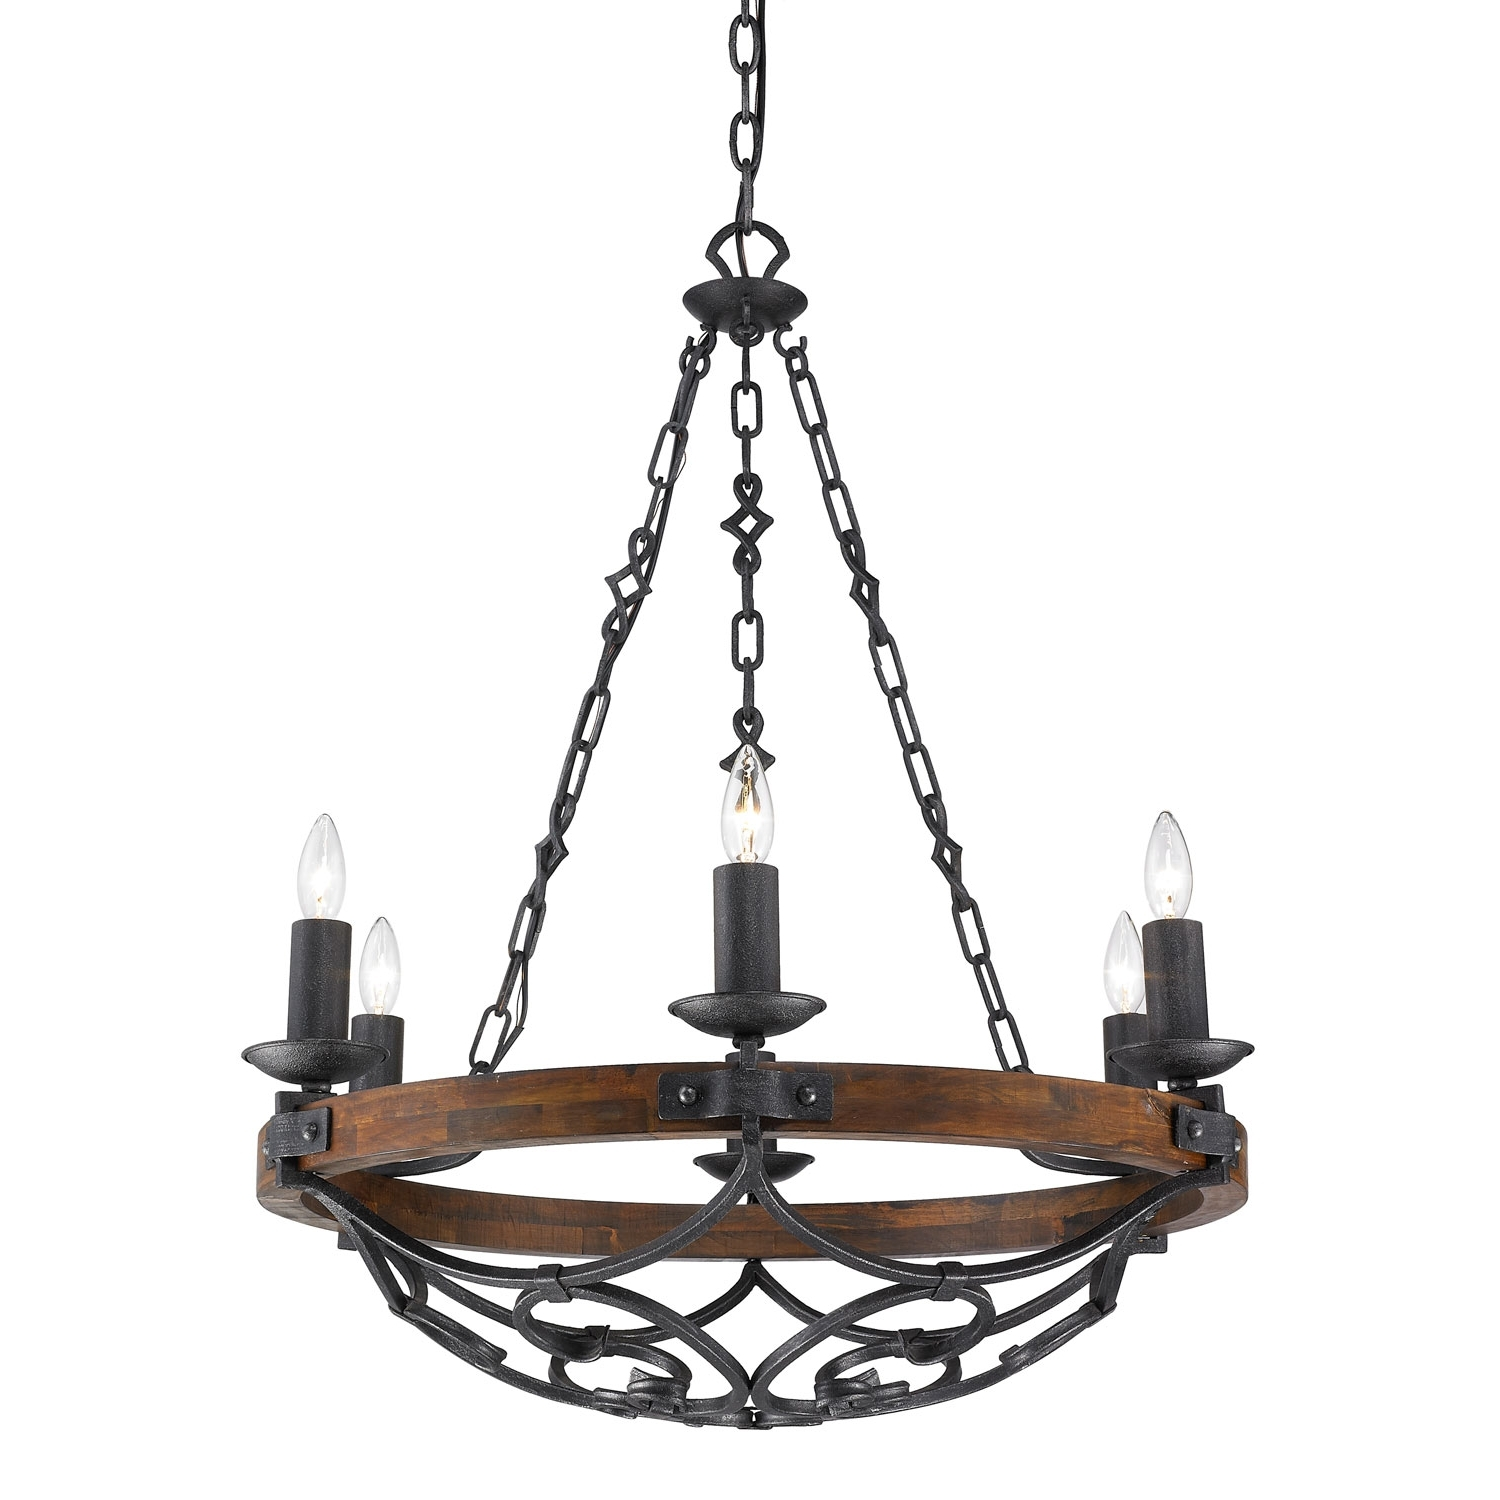 Newest Old World Chandeliers, Kitchen Chandeliers From Bellacor In Black Iron Chandeliers (Gallery 8 of 20)